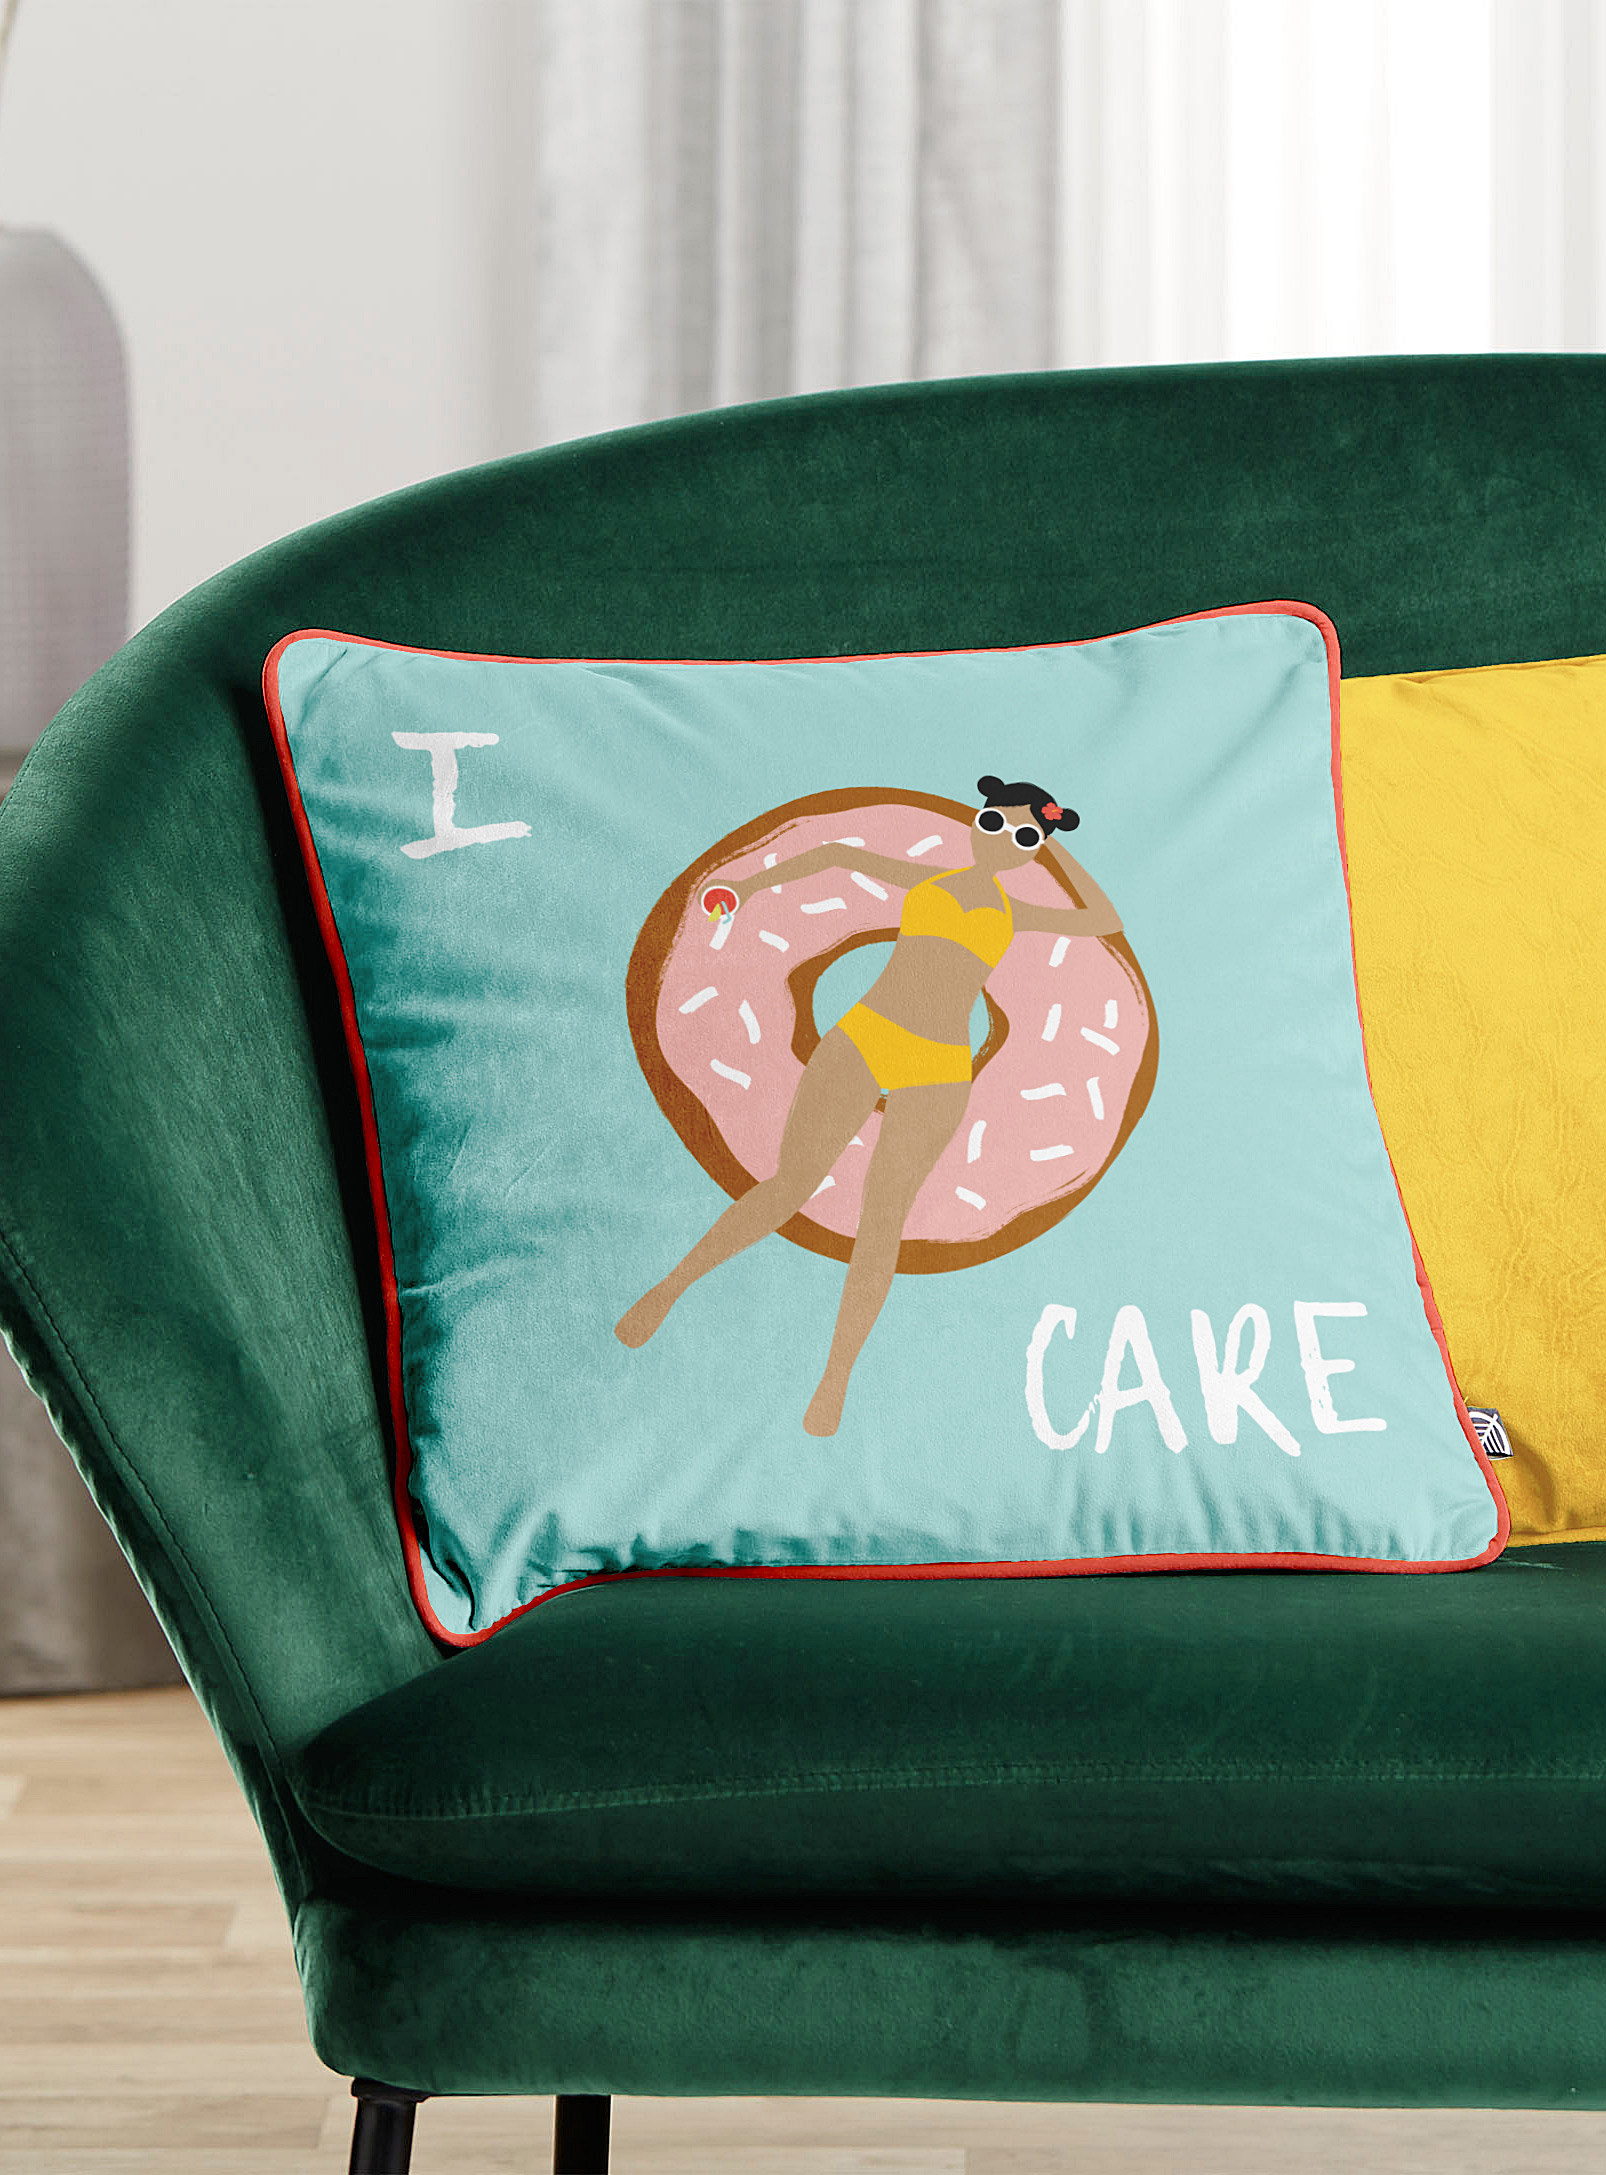 A cushion with the print of a person swimming on a donut floatie